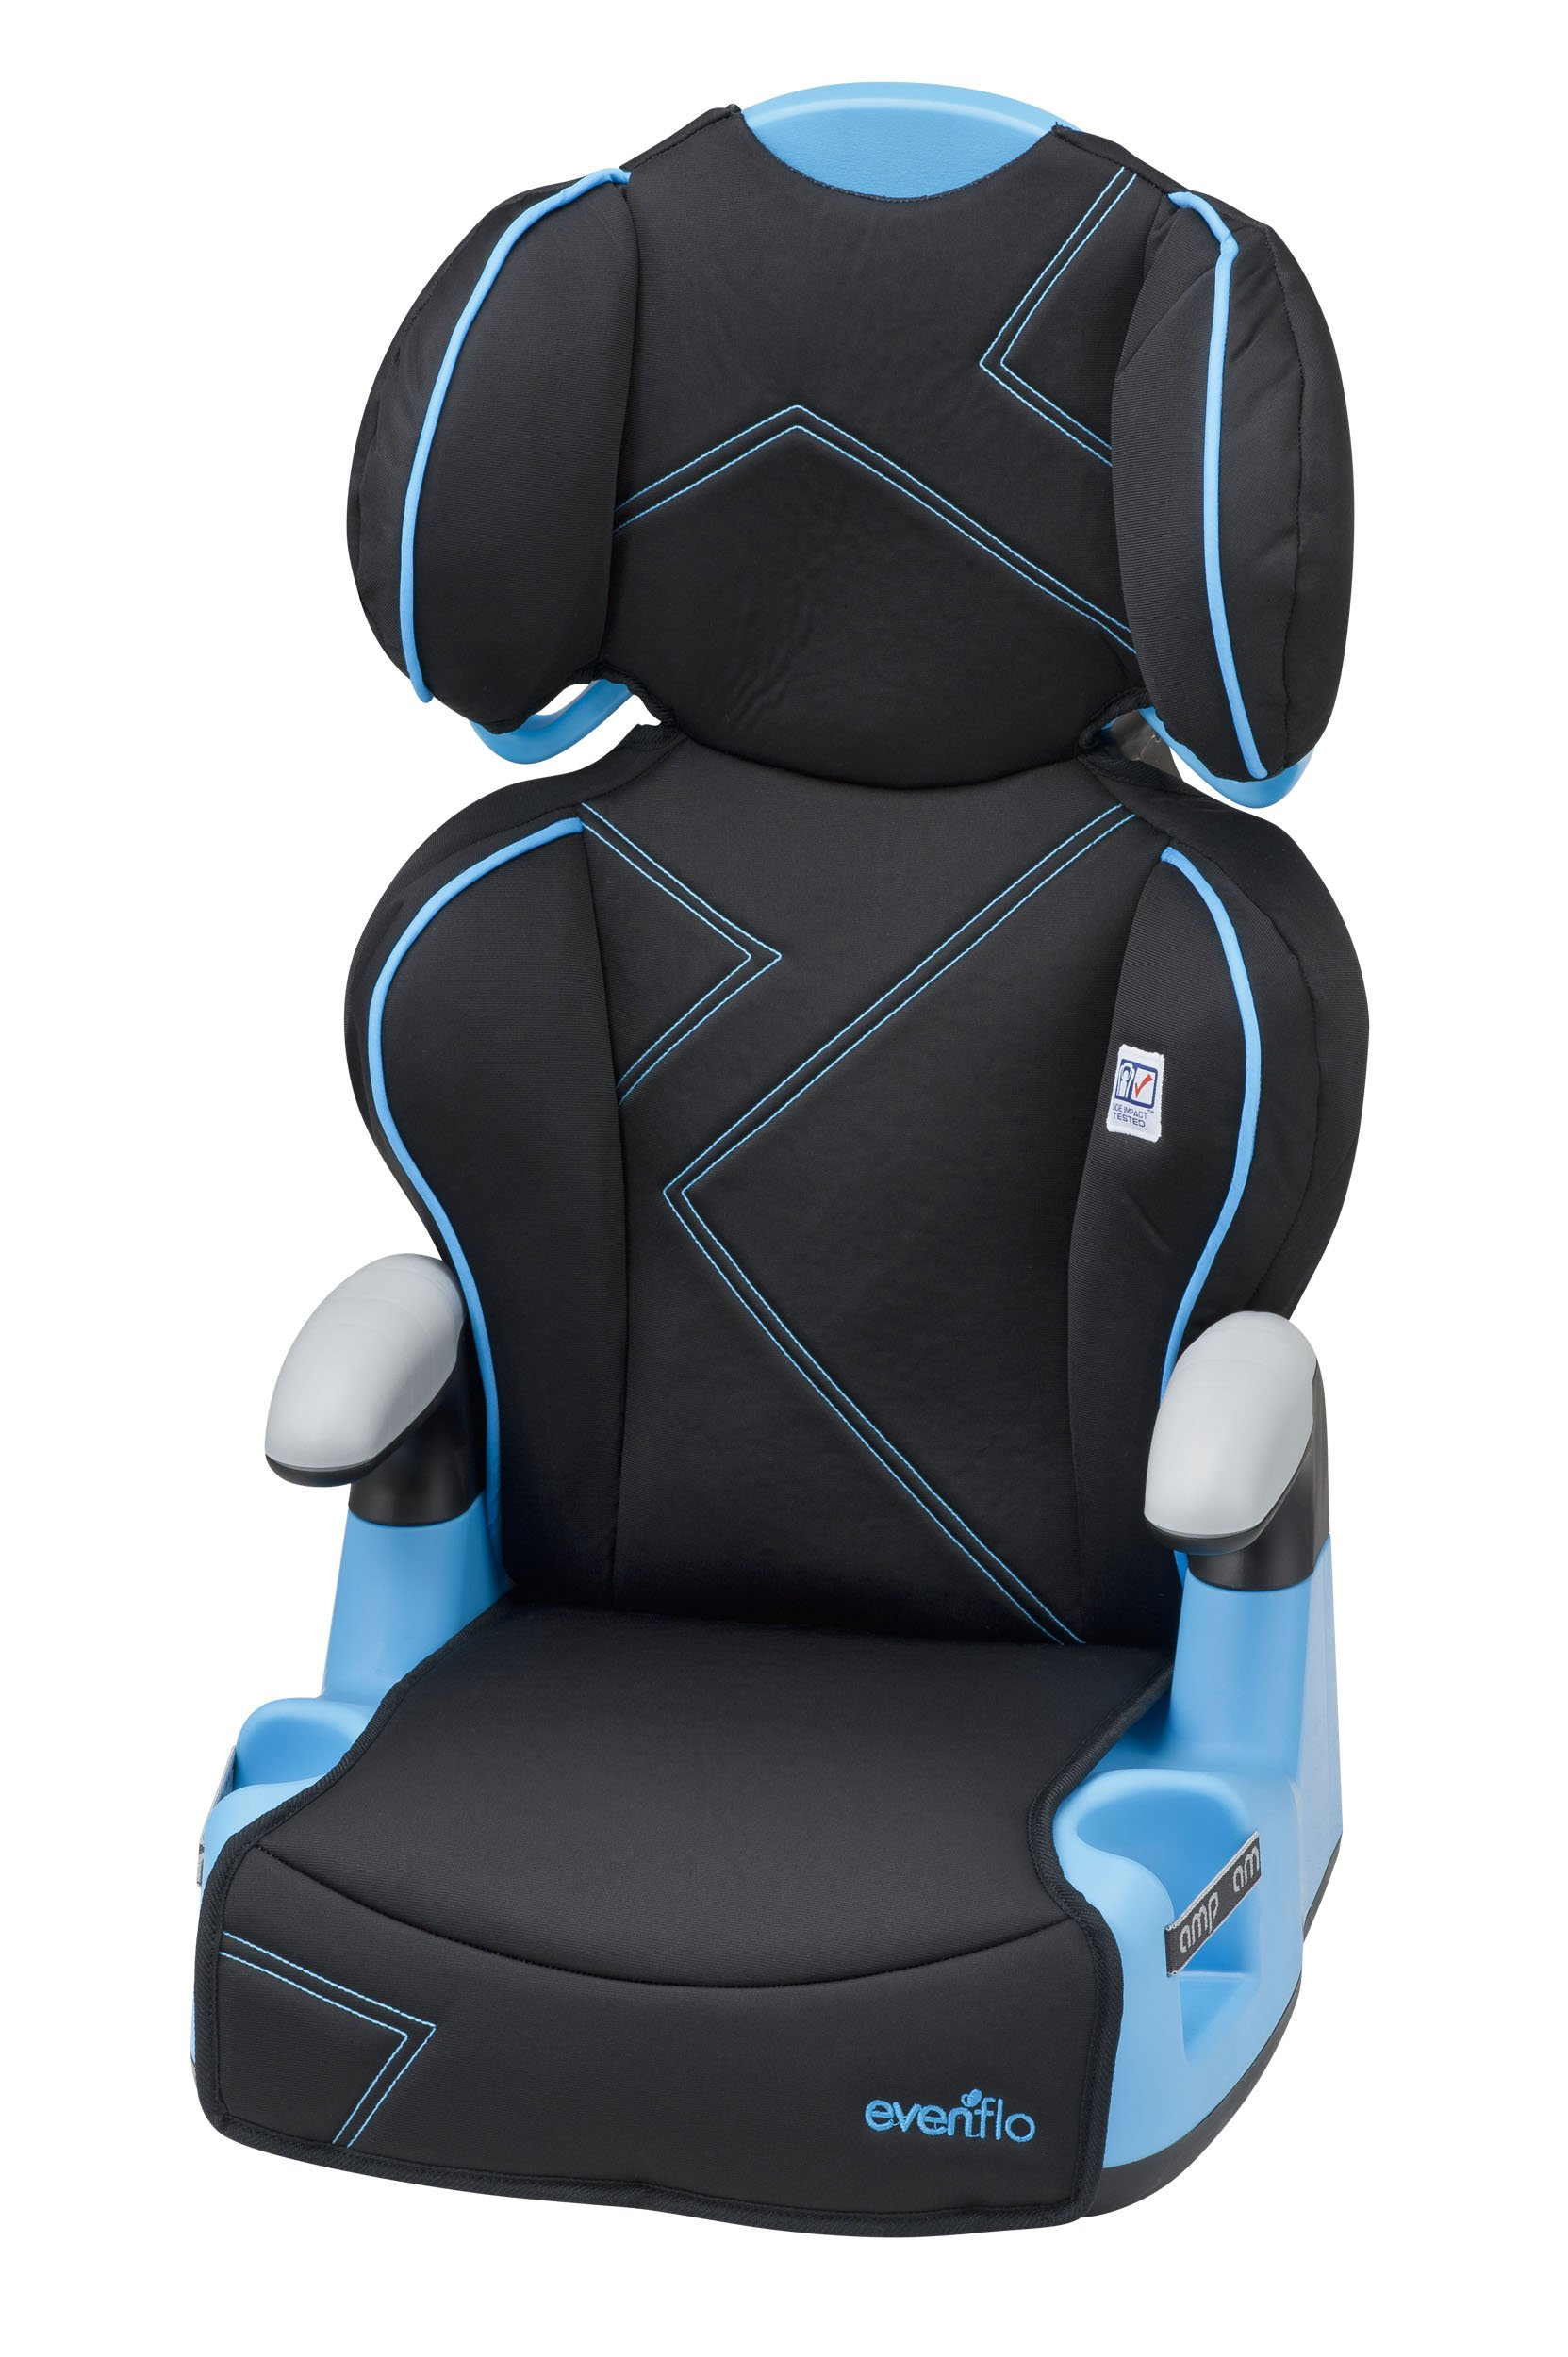 Evenflo Sureride Dlx Convertible Car Seat >> Amazon.com : Evenflo Tribute LX Convertible Car Seat - Neptune : Baby